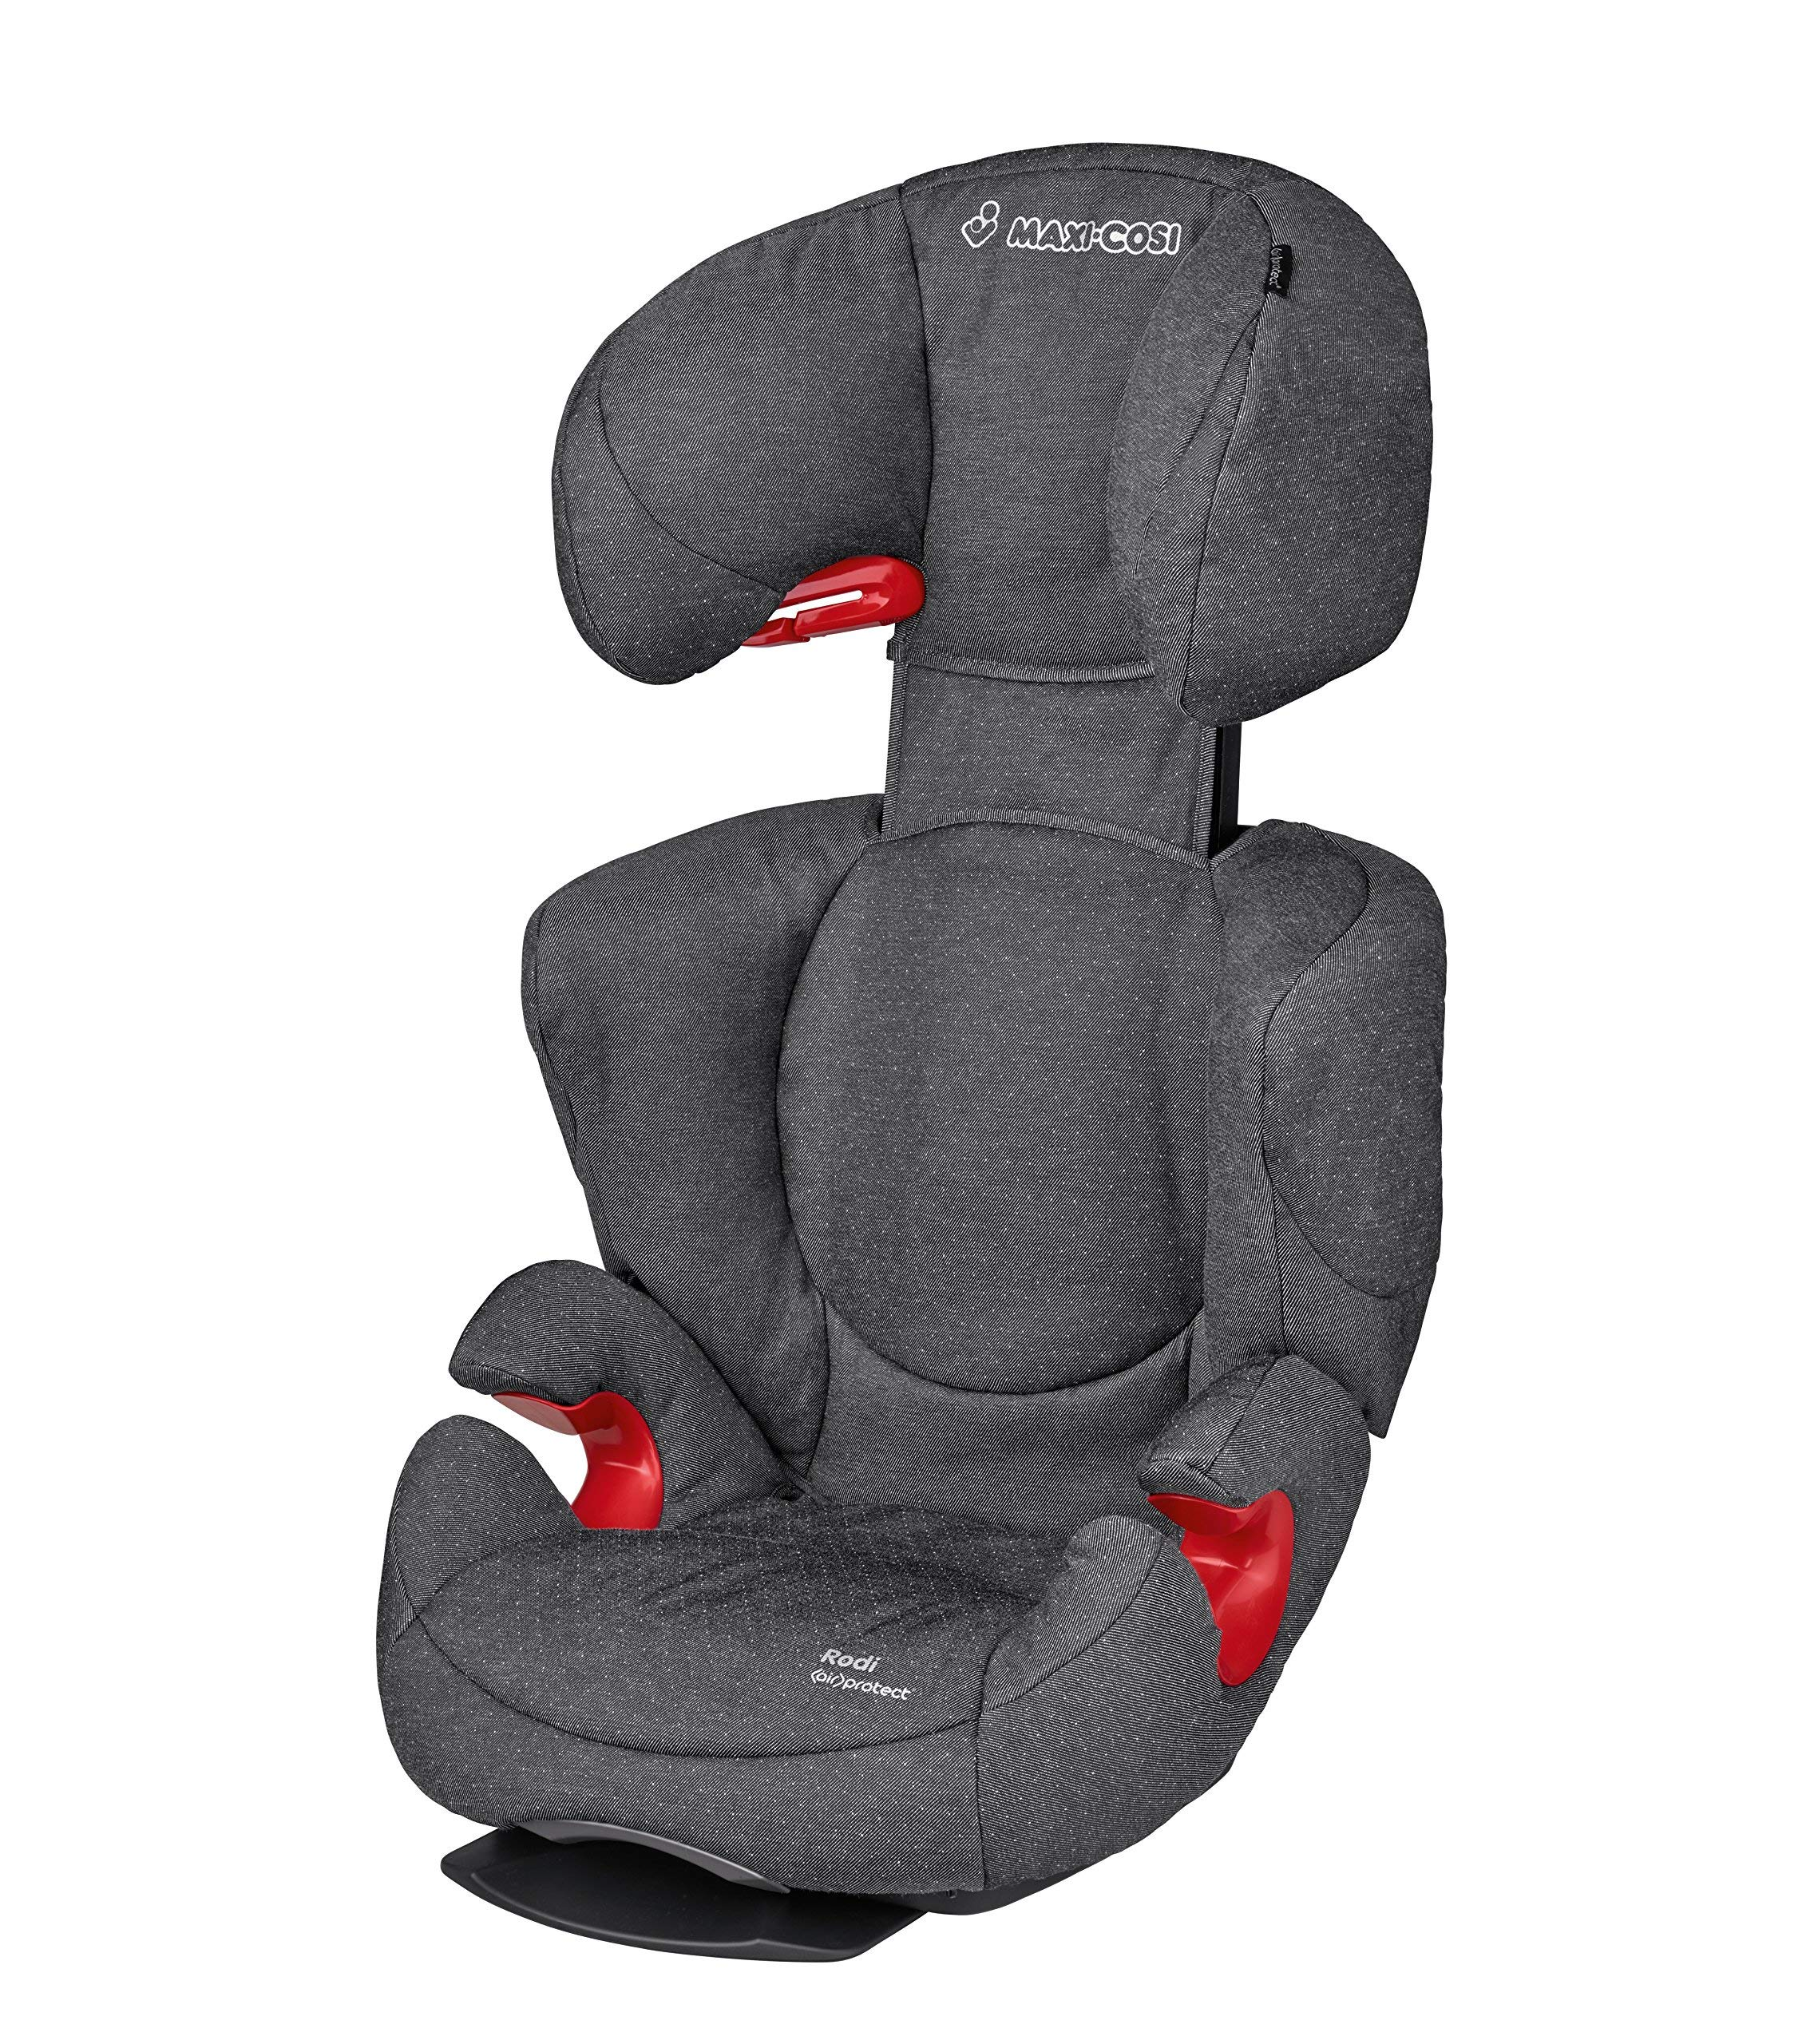 Maxi-Cosi Rodi AirProtect Child Car Seat, Lightweight Highback Booster, 3.5-12 Years, 15-36 kg, Sparkling Grey Maxi-Cosi Child car seat, suitable from 3.5 to 12 years (15-36 kg) Easily install this safe car seat with a three point seat belt and attach the anchorage point in the head rest through your cars head rest Patented AirProtect technology in headrest reduces the risk of head and neck injuries up to 20 percent 2